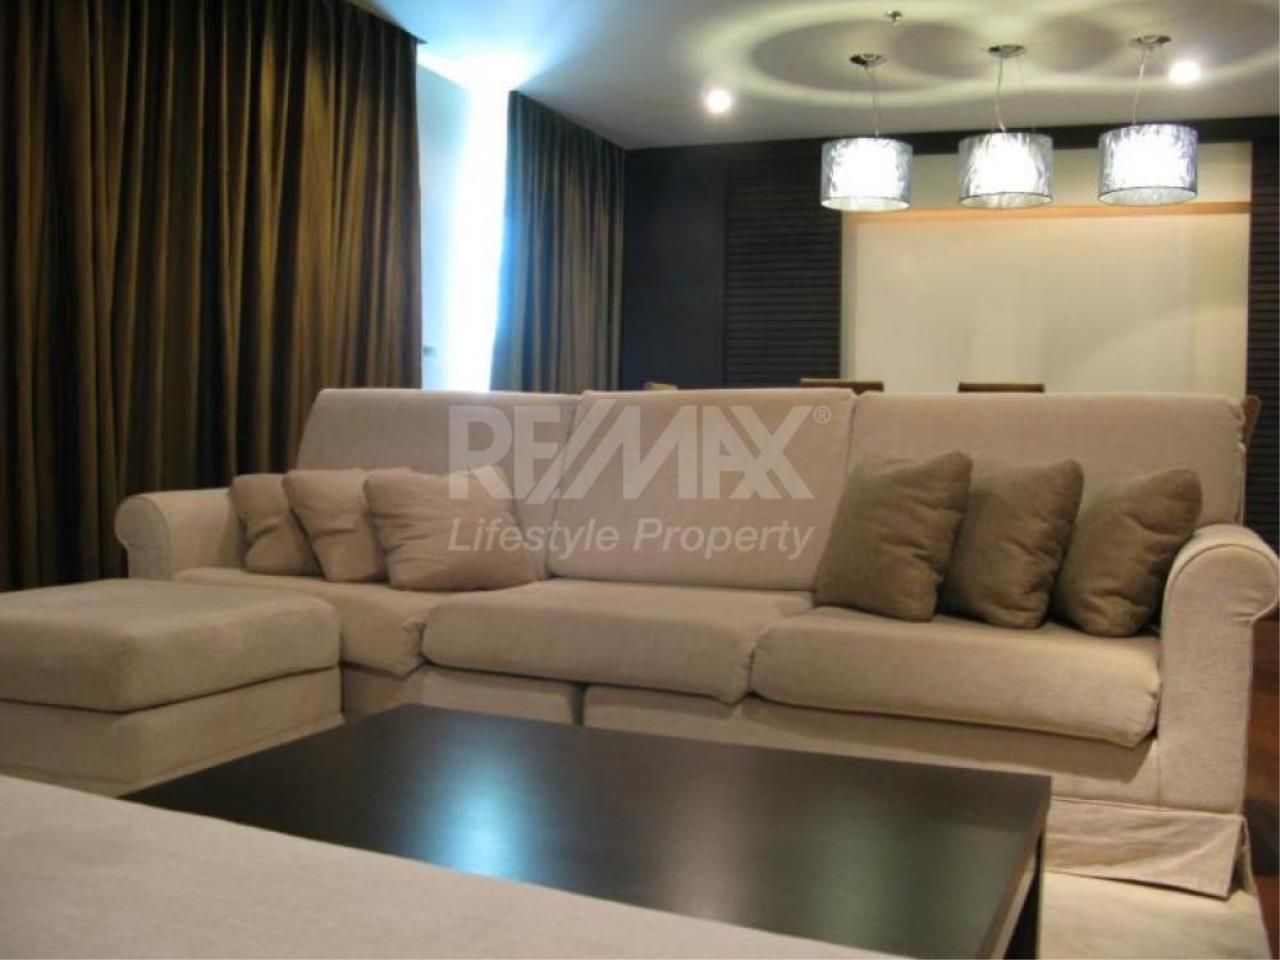 RE/MAX LifeStyle Property Agency's Baan Siri Silom 12